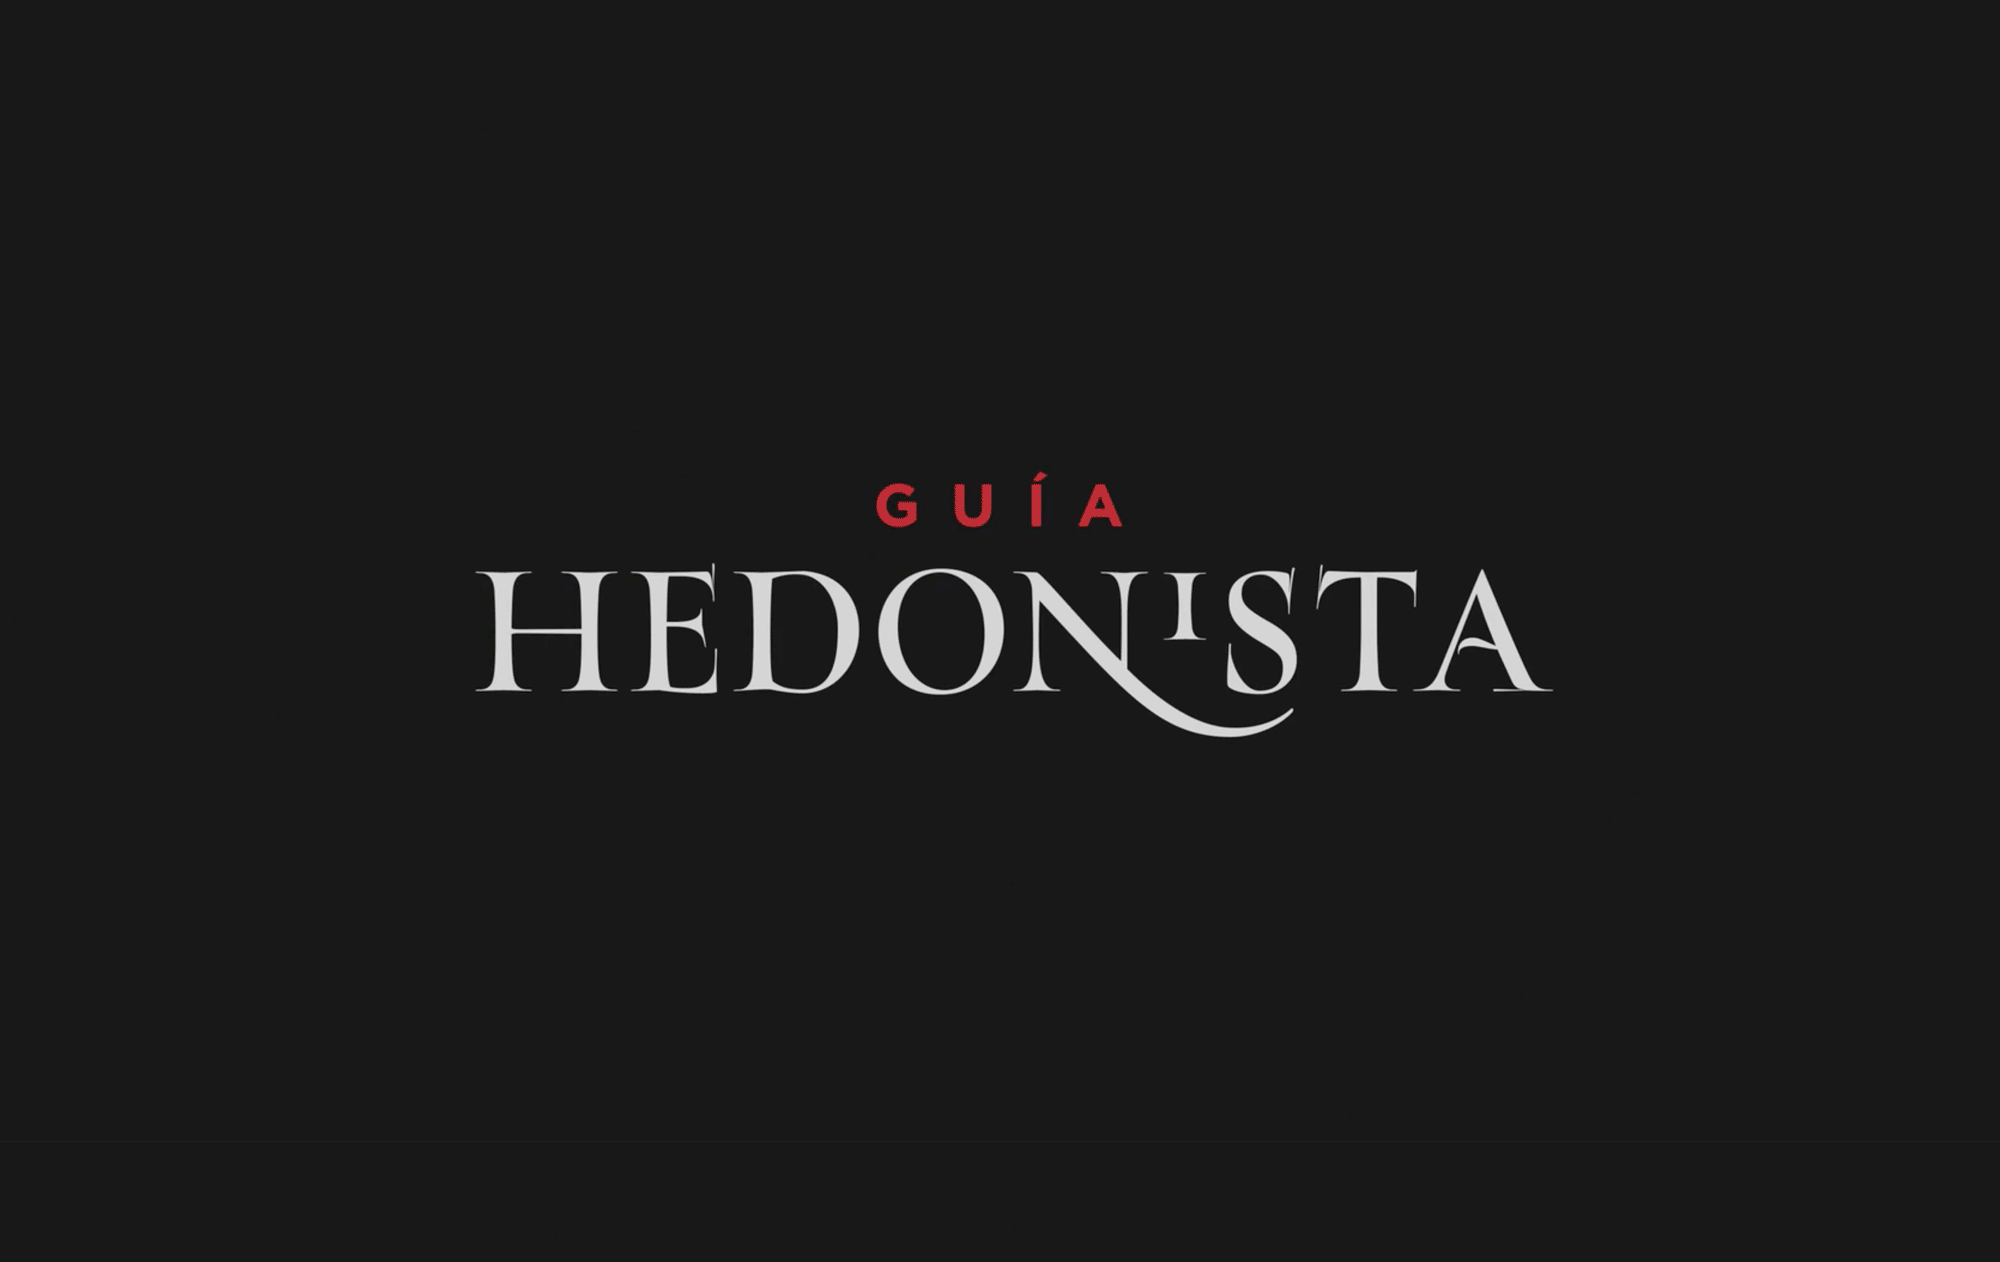 guia-hedonista-turquoise-font-in-use